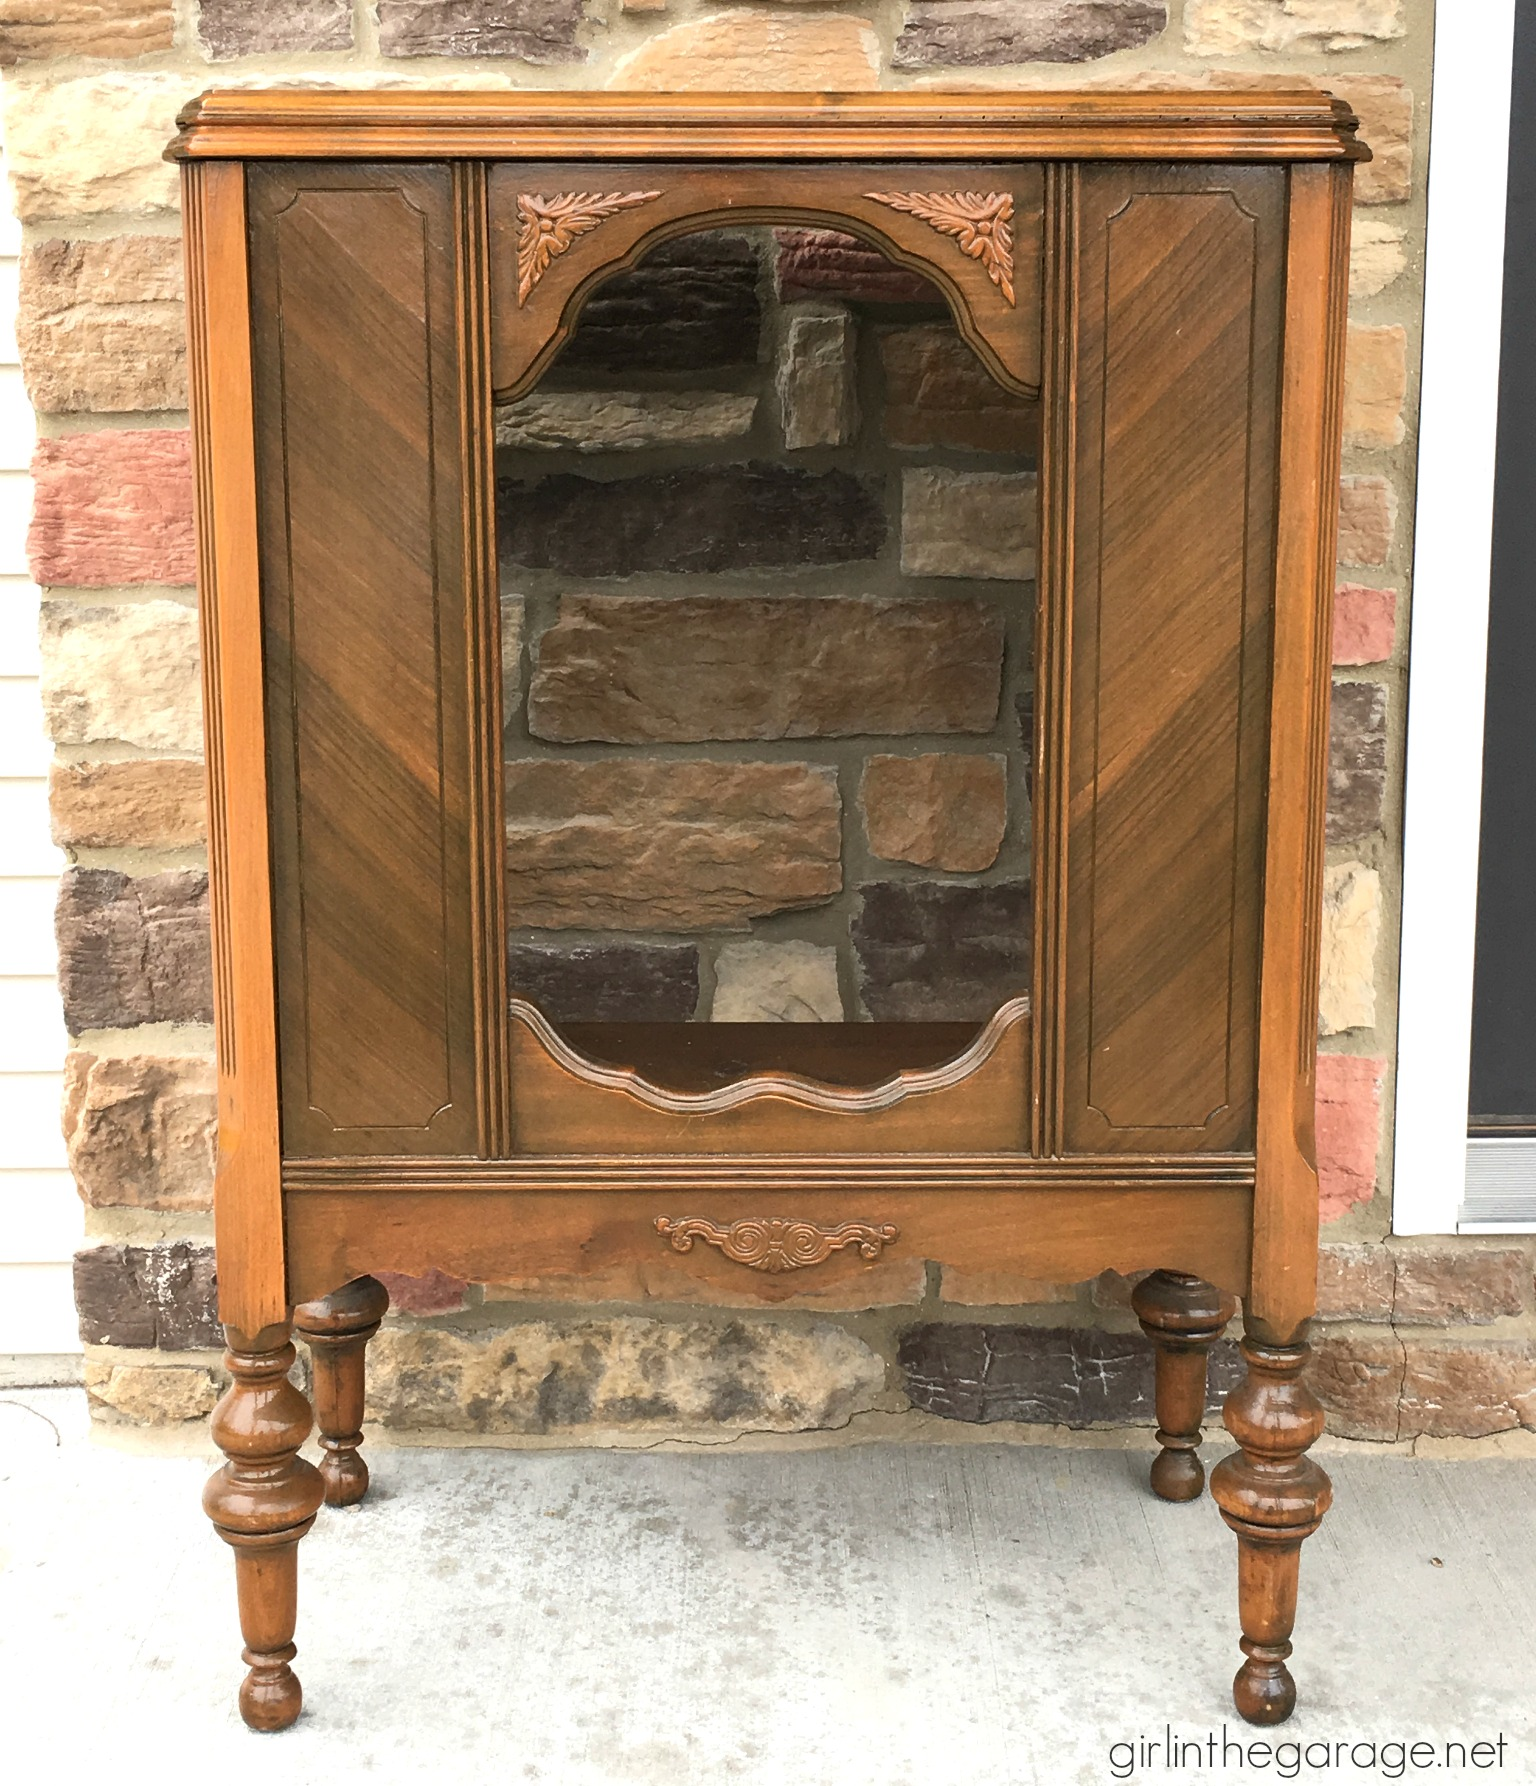 Repurposed antique radio cabinet to bookcase - by Girl in the Garage - Antique Repurposed Radio Cabinet Girl In The Garage®